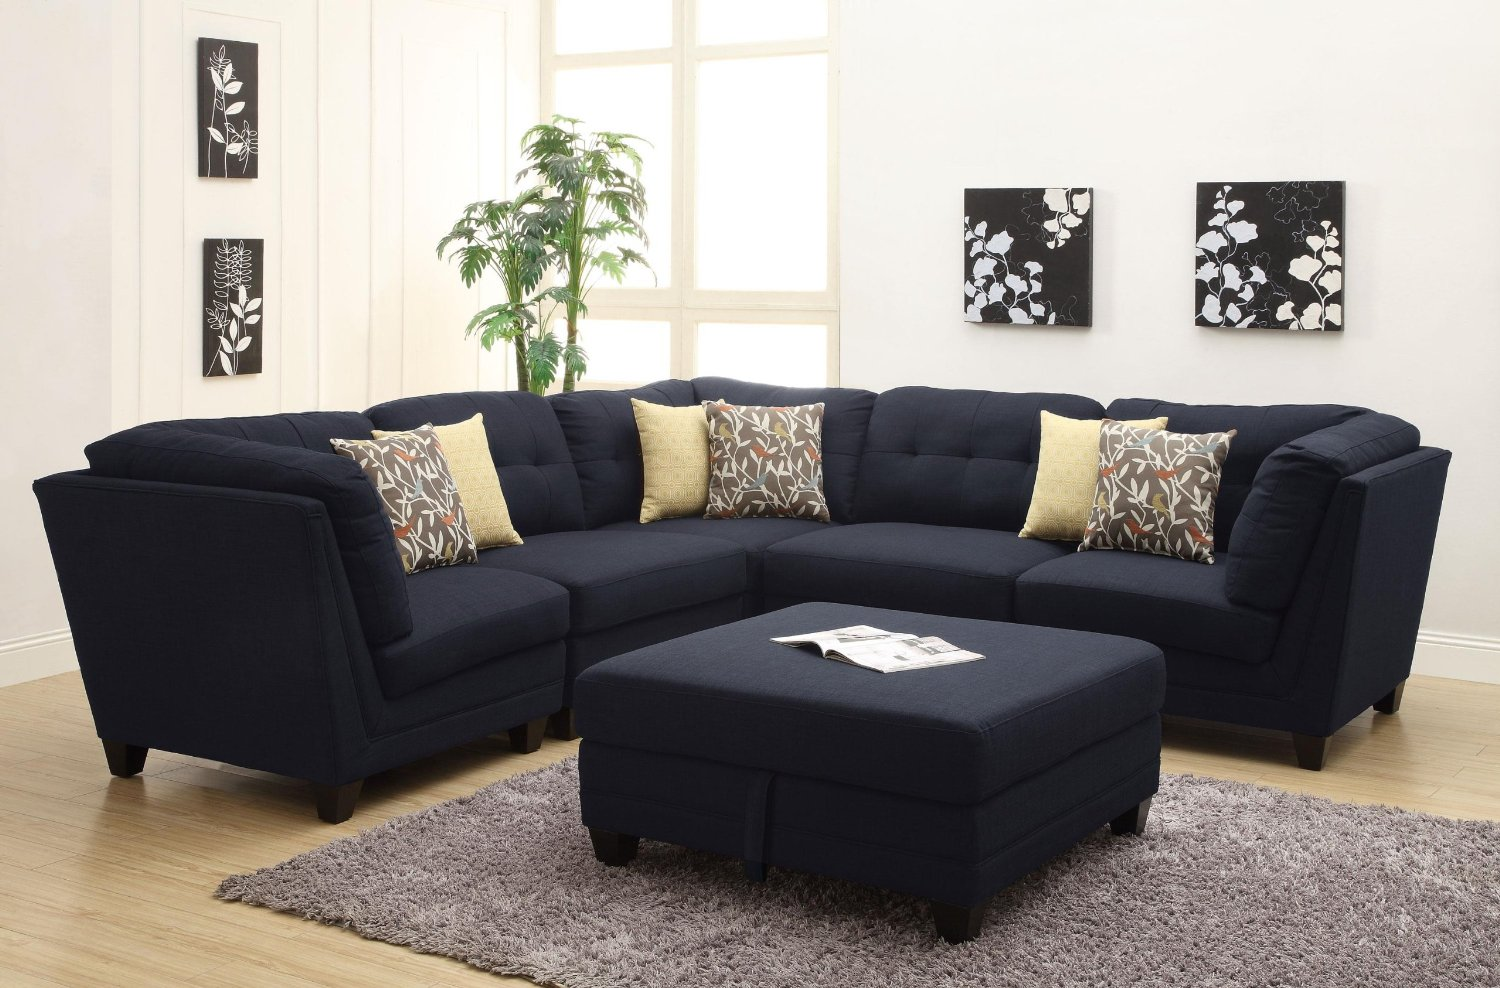 Most comfortable sectional sofa for fulfilling a pleasant How to position sofas in living room